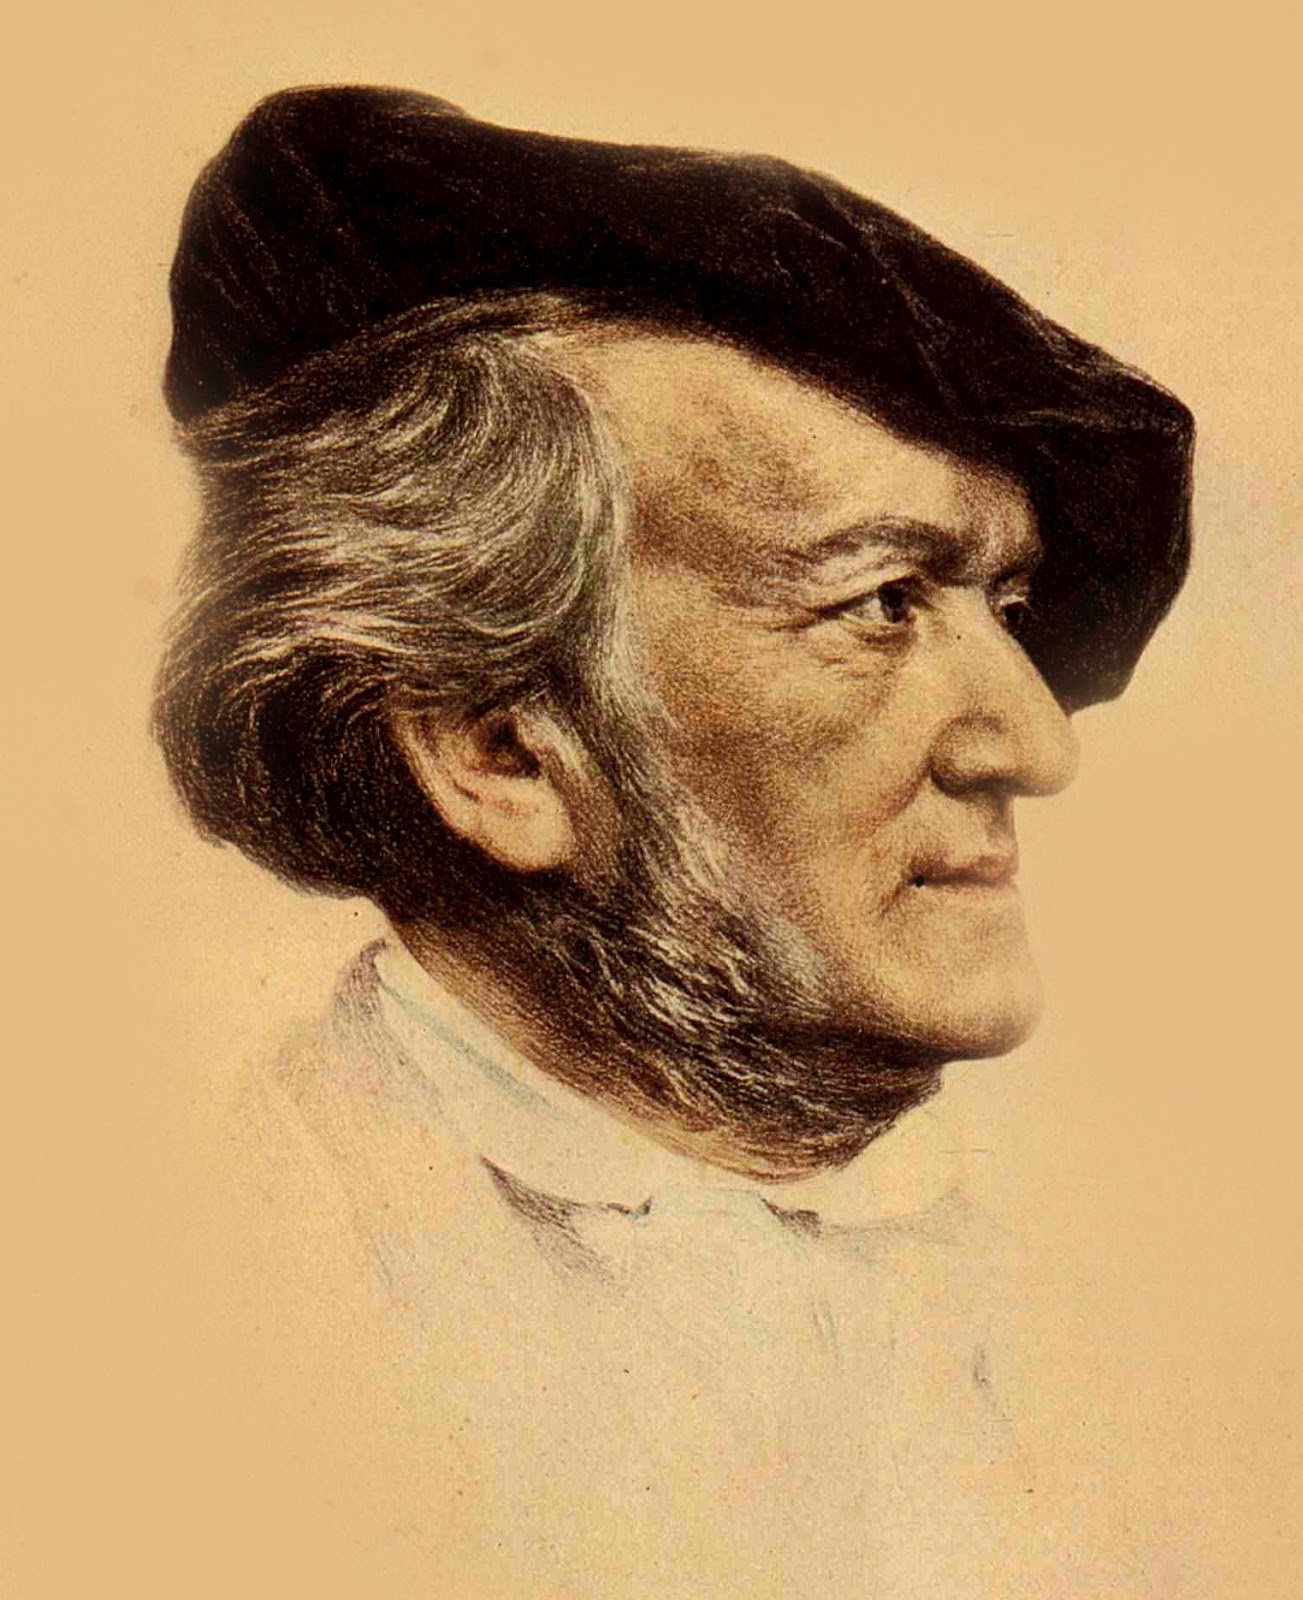 richard wagners anti semitism wagner1813 1883 essay Richard wagner 1813 -1883: anti-semitism and immigration anton douglas 1003774 music technology: music production april 2015 dissertation studio with christina paine, lewis jones and allan seago.